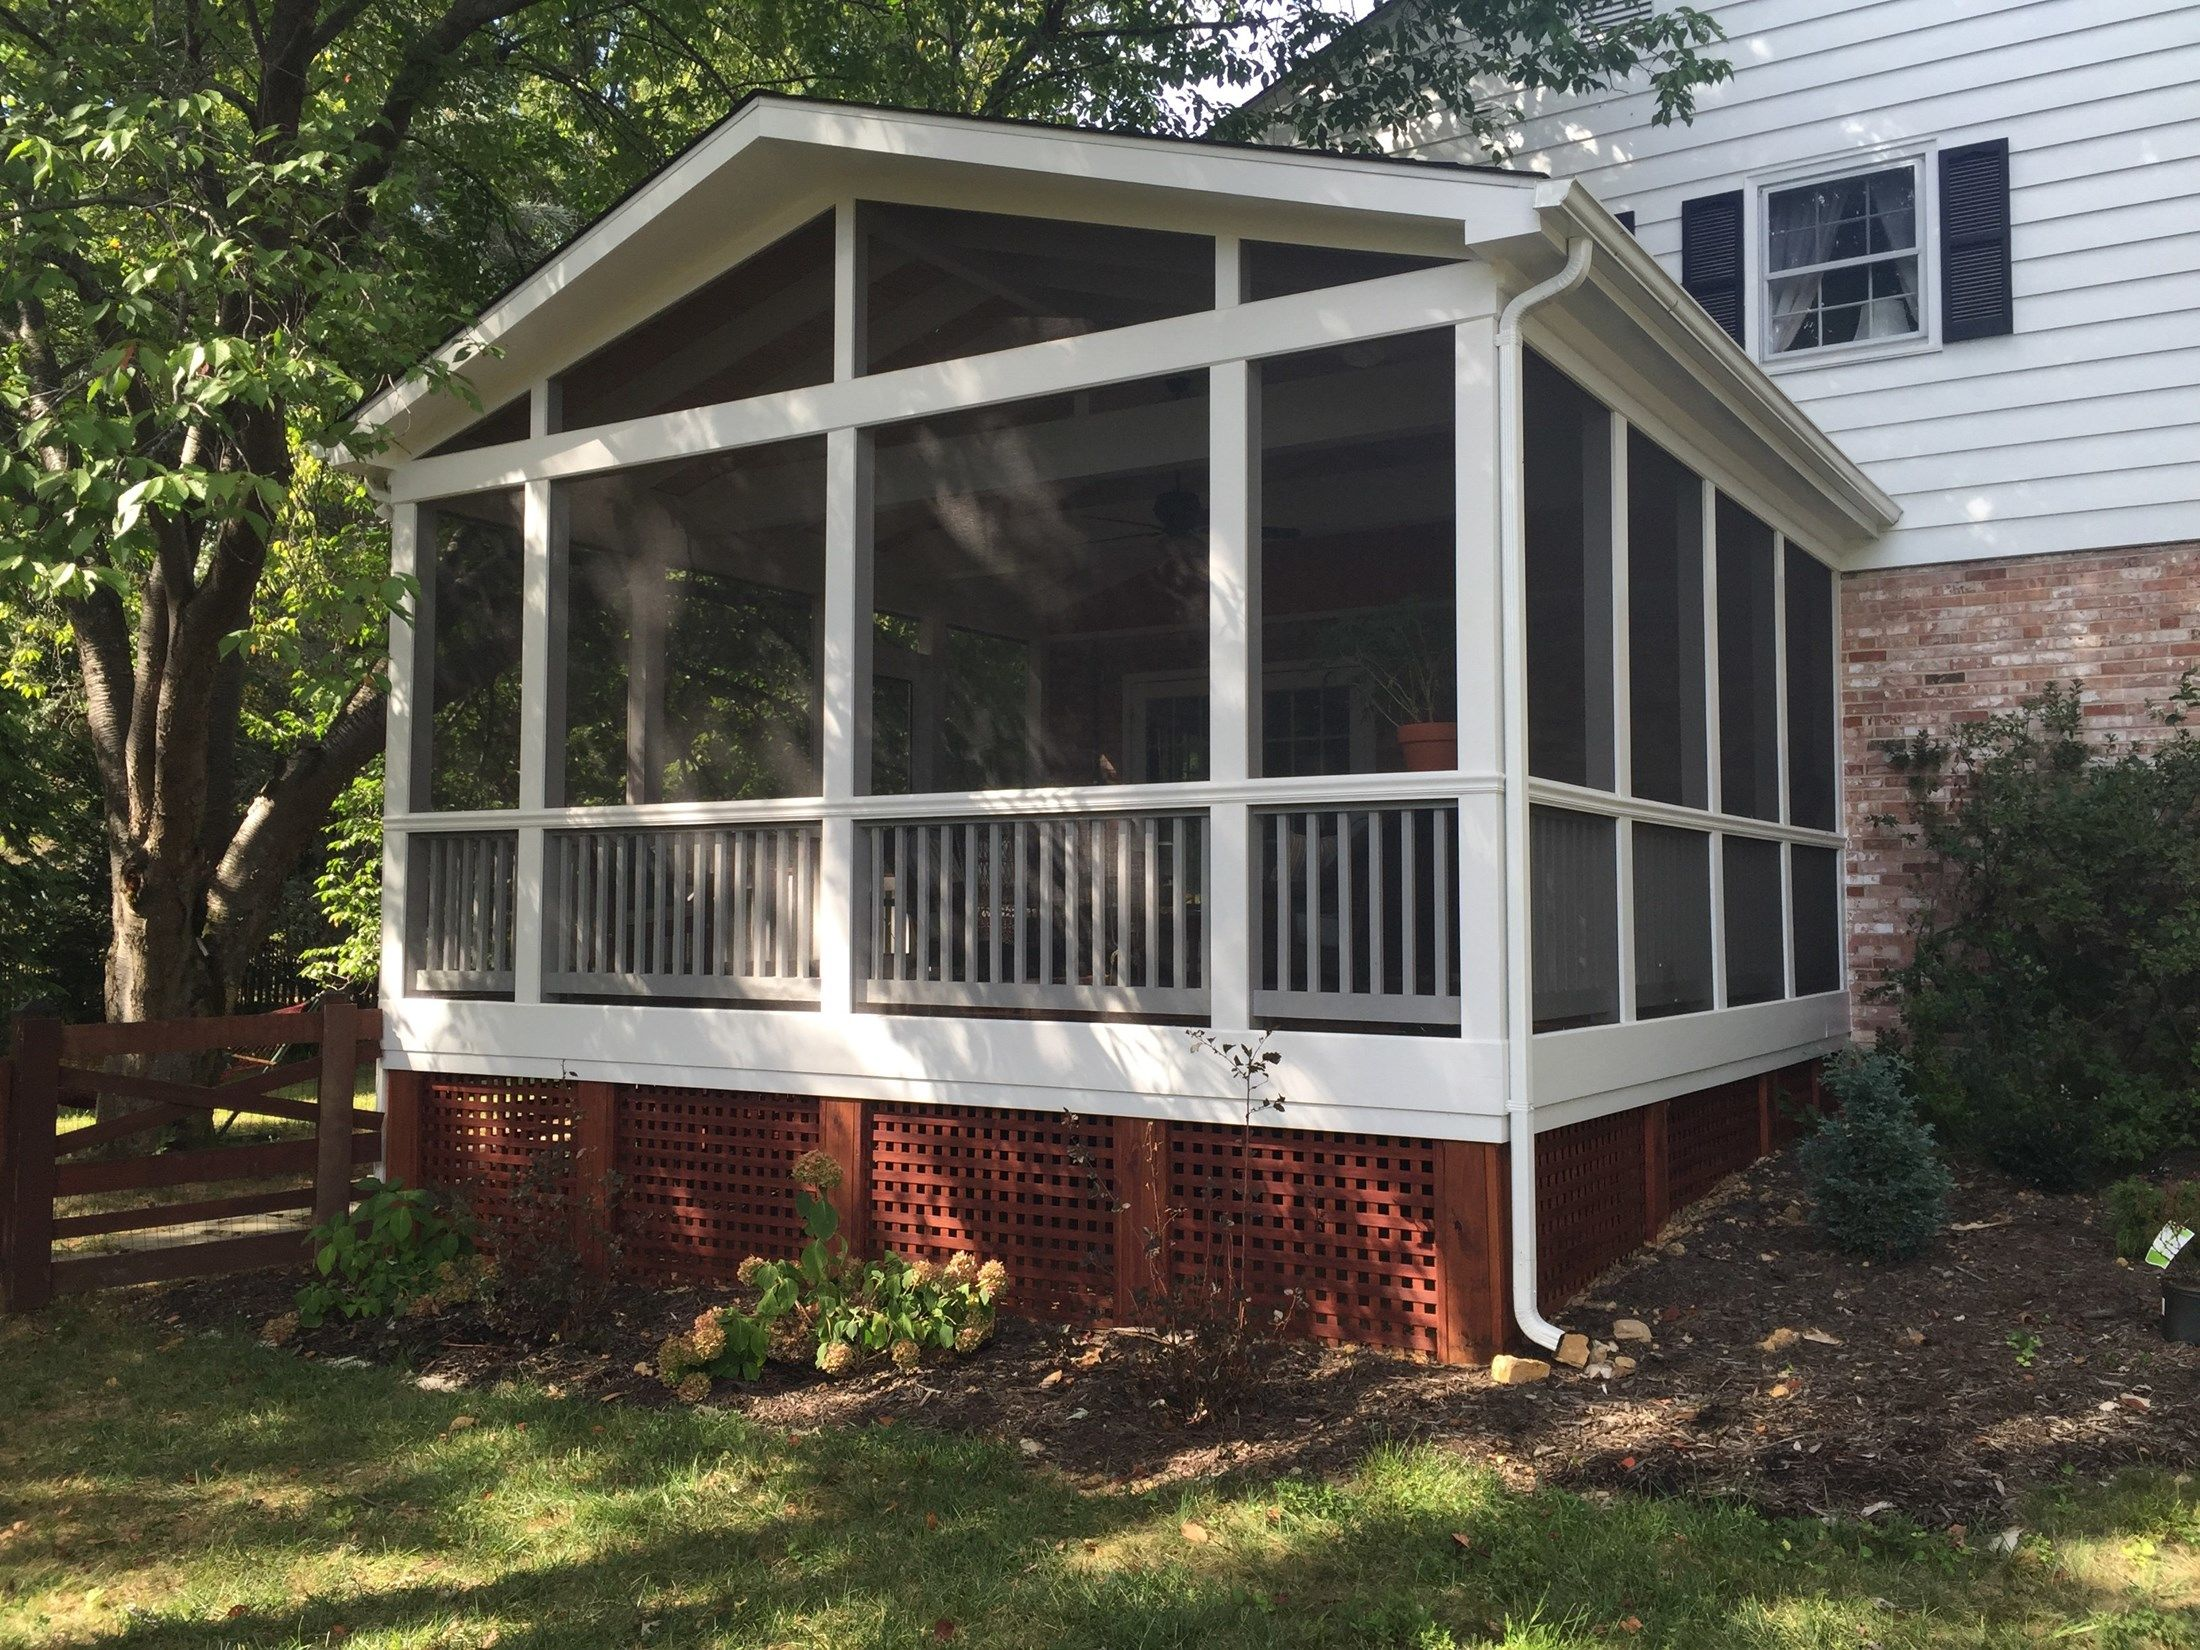 Screen porch, gable roof - Picture 2091